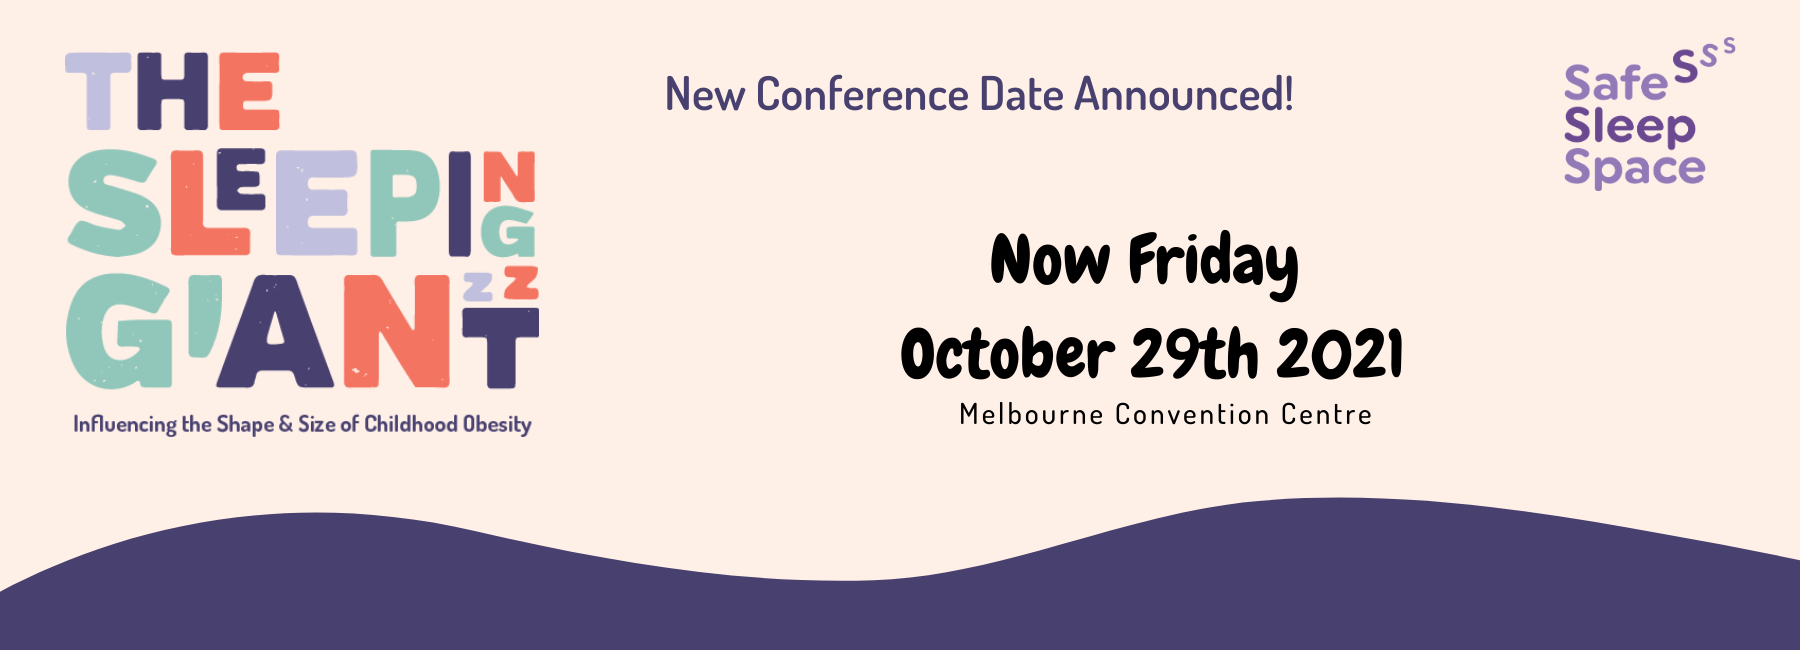 2021 Safe Sleep Space National Conference